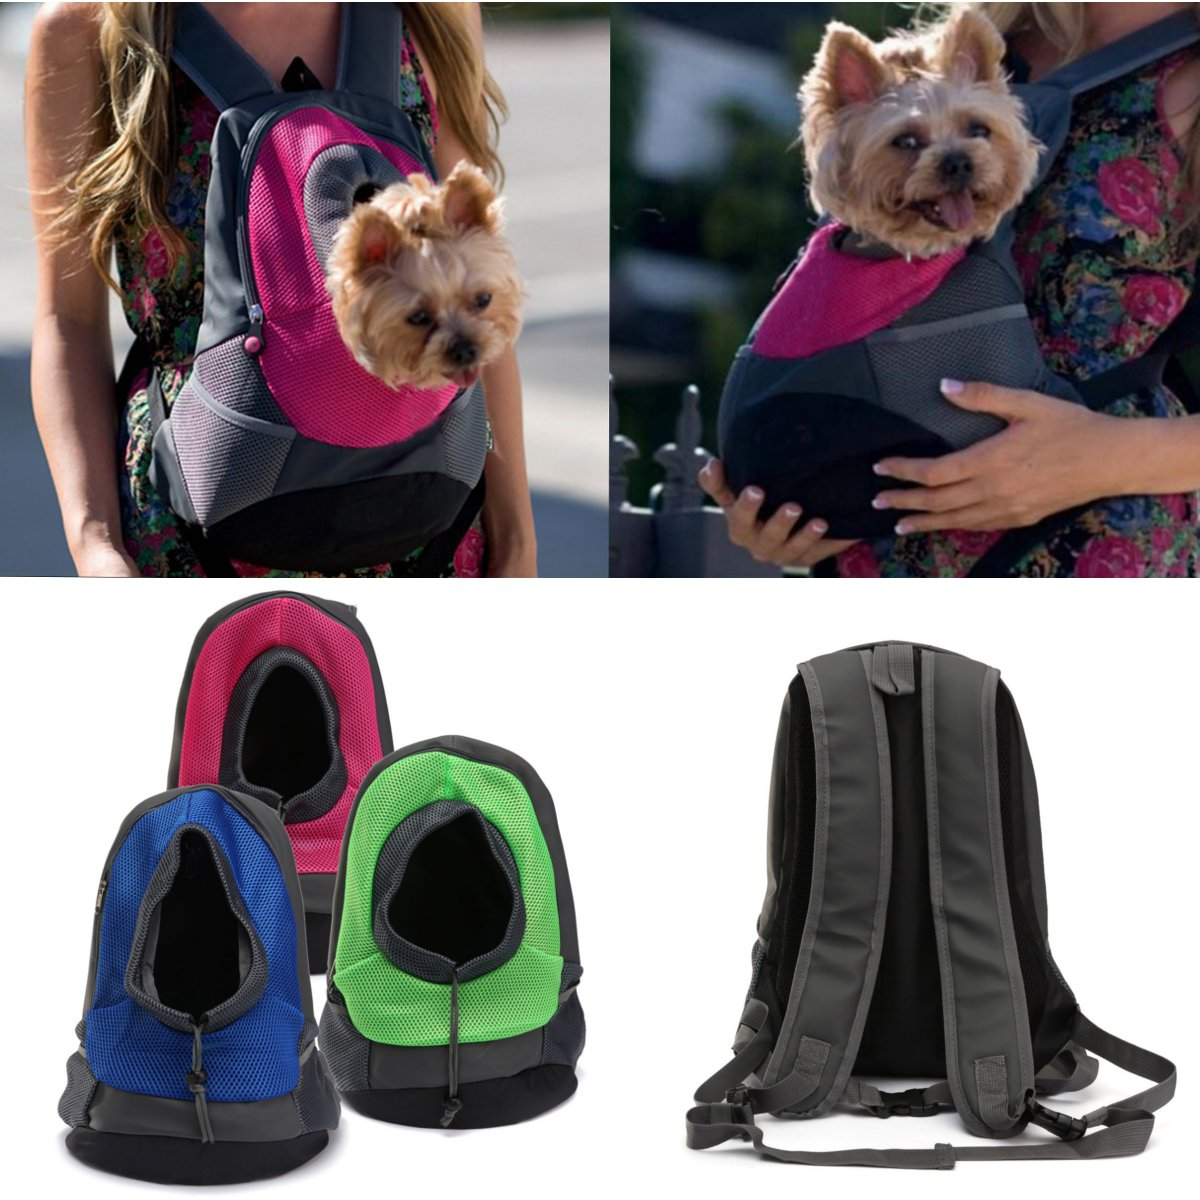 Dog Carrier Cat Puppy Mesh Pet Travel Bag Backpack Double Portable Shoulder At Banggood Sold Out